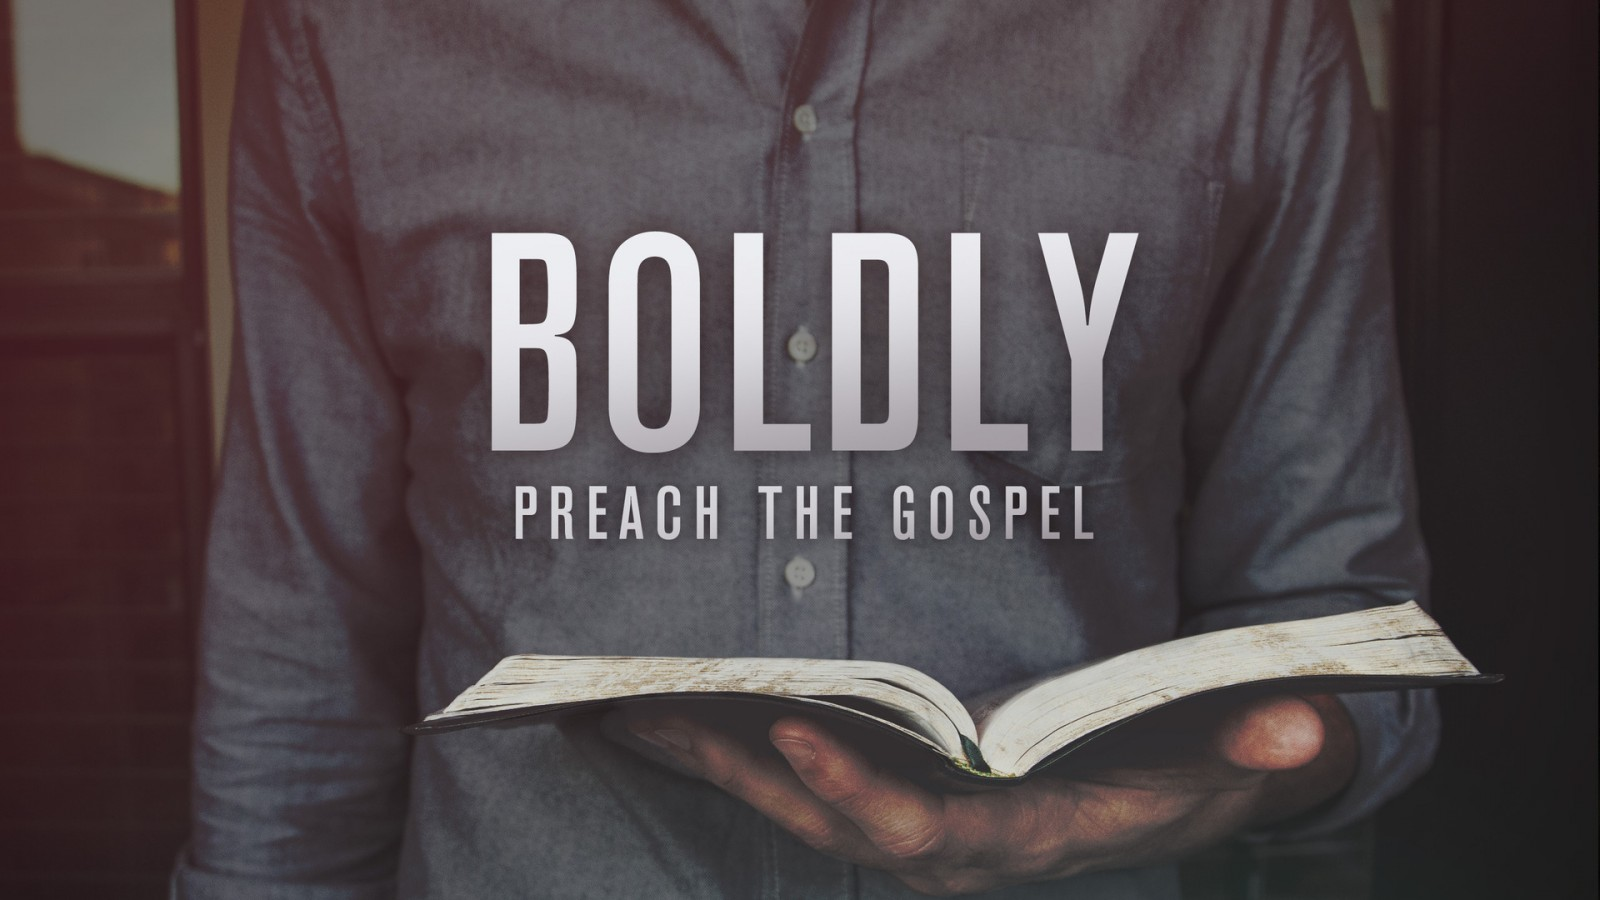 boldly_preach_the_gospel-title-2-Wide 16x9